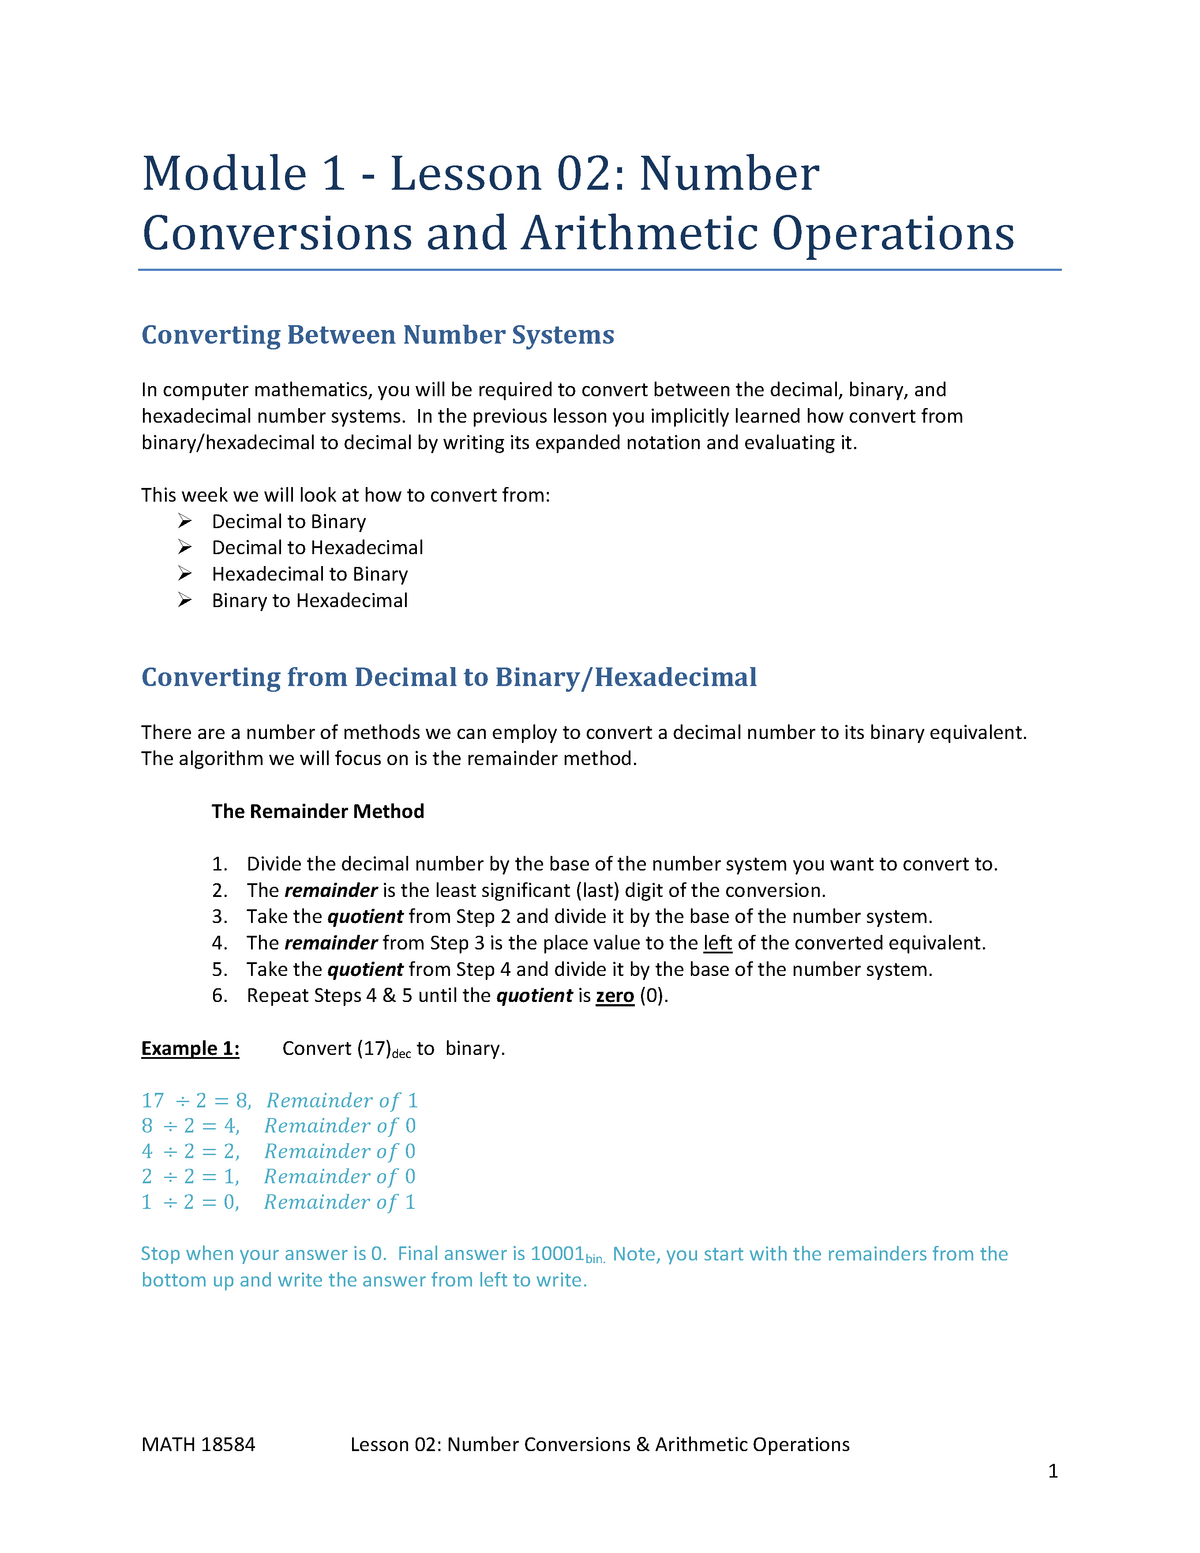 Lesson 1-02 - Number Conversions and Arithmetic Operations